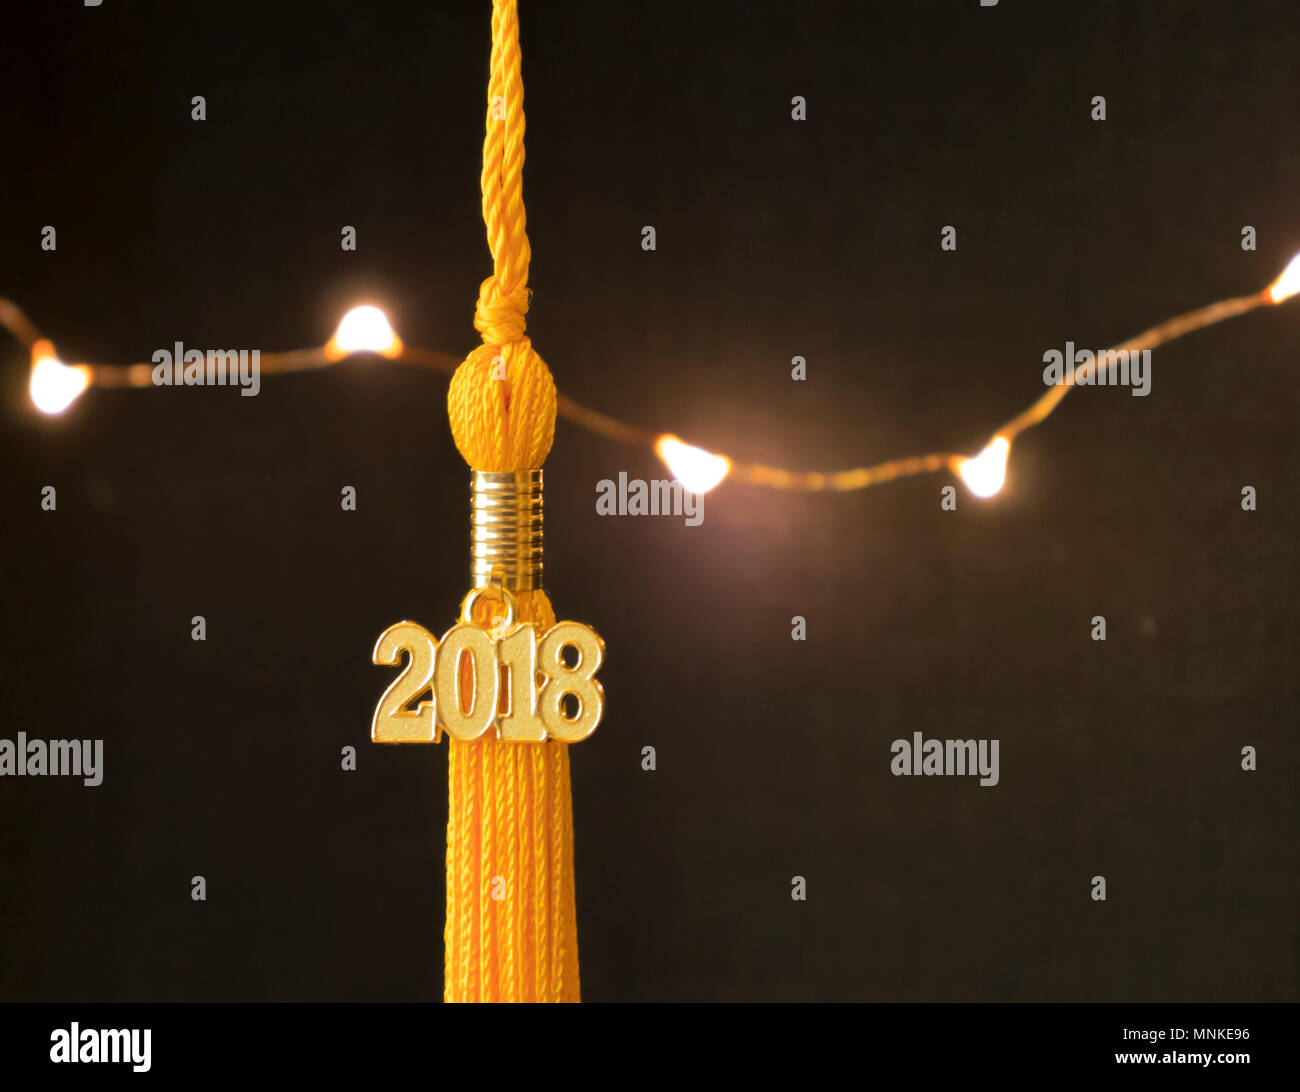 Class of 2018. Gold tassel drop graduation gown accessory and keepsake against a black background and lights. Iconic symbol of academic achievement. - Stock Image